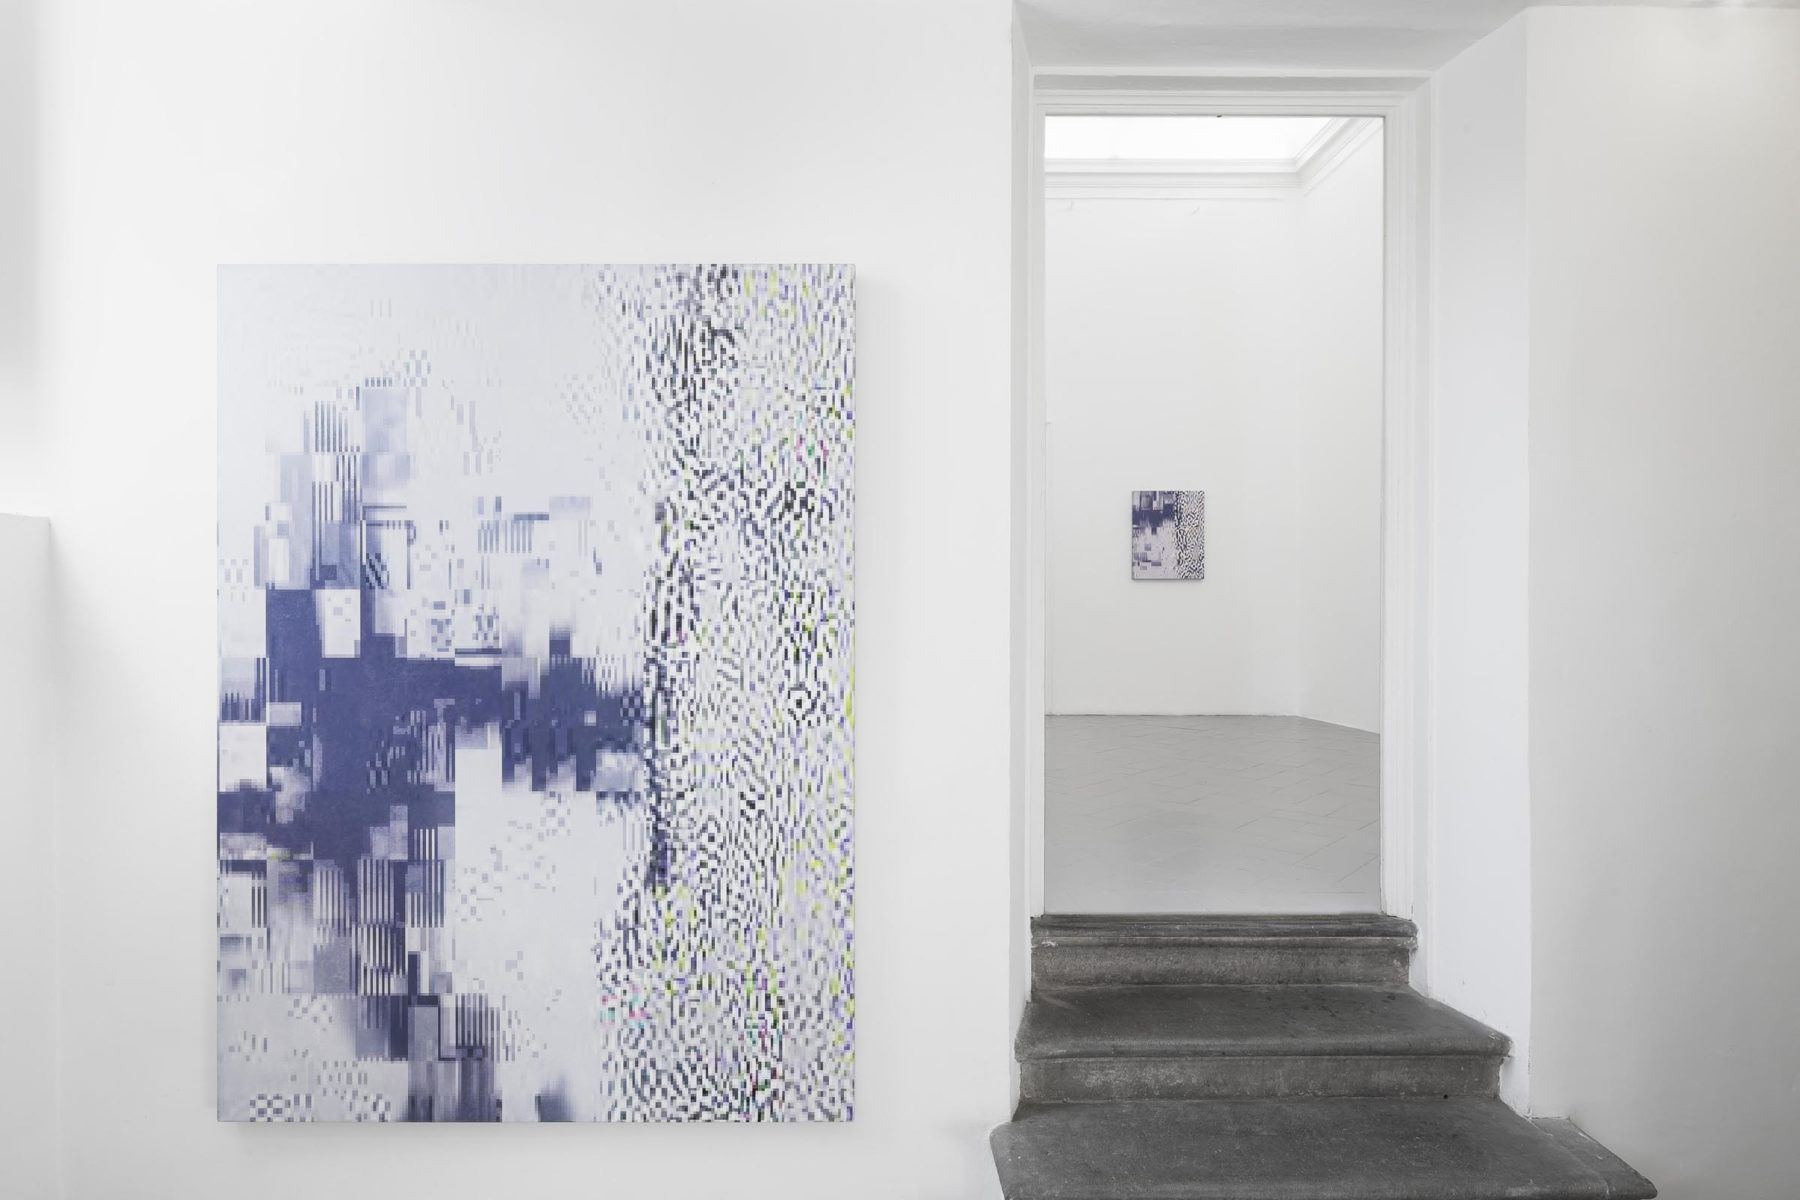 Beneath the Surface, installation view (works by K. Wyrebek), Eduardo Secci Contemporary, Florence, ph. S. Maniero